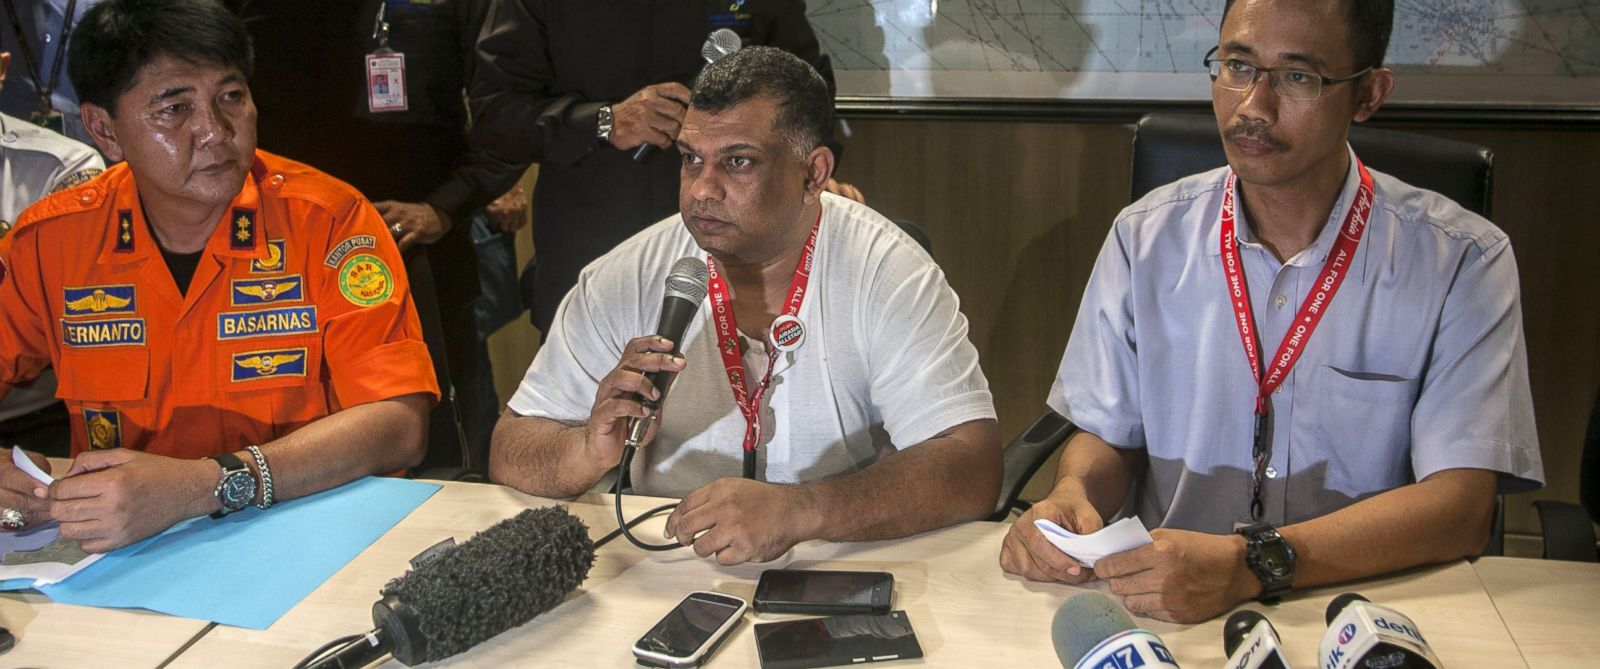 PHOTO: Director of Air Asia Tony Fernandes (C), President Air Asia Indonesia Sunu Widiatmoko (R) and the head of Surabaya search and rescue Hernanto (L), speak in Surabaya, East Java, on Dec. 28, 2014, after Air Asia flight QZ8501 went missing.